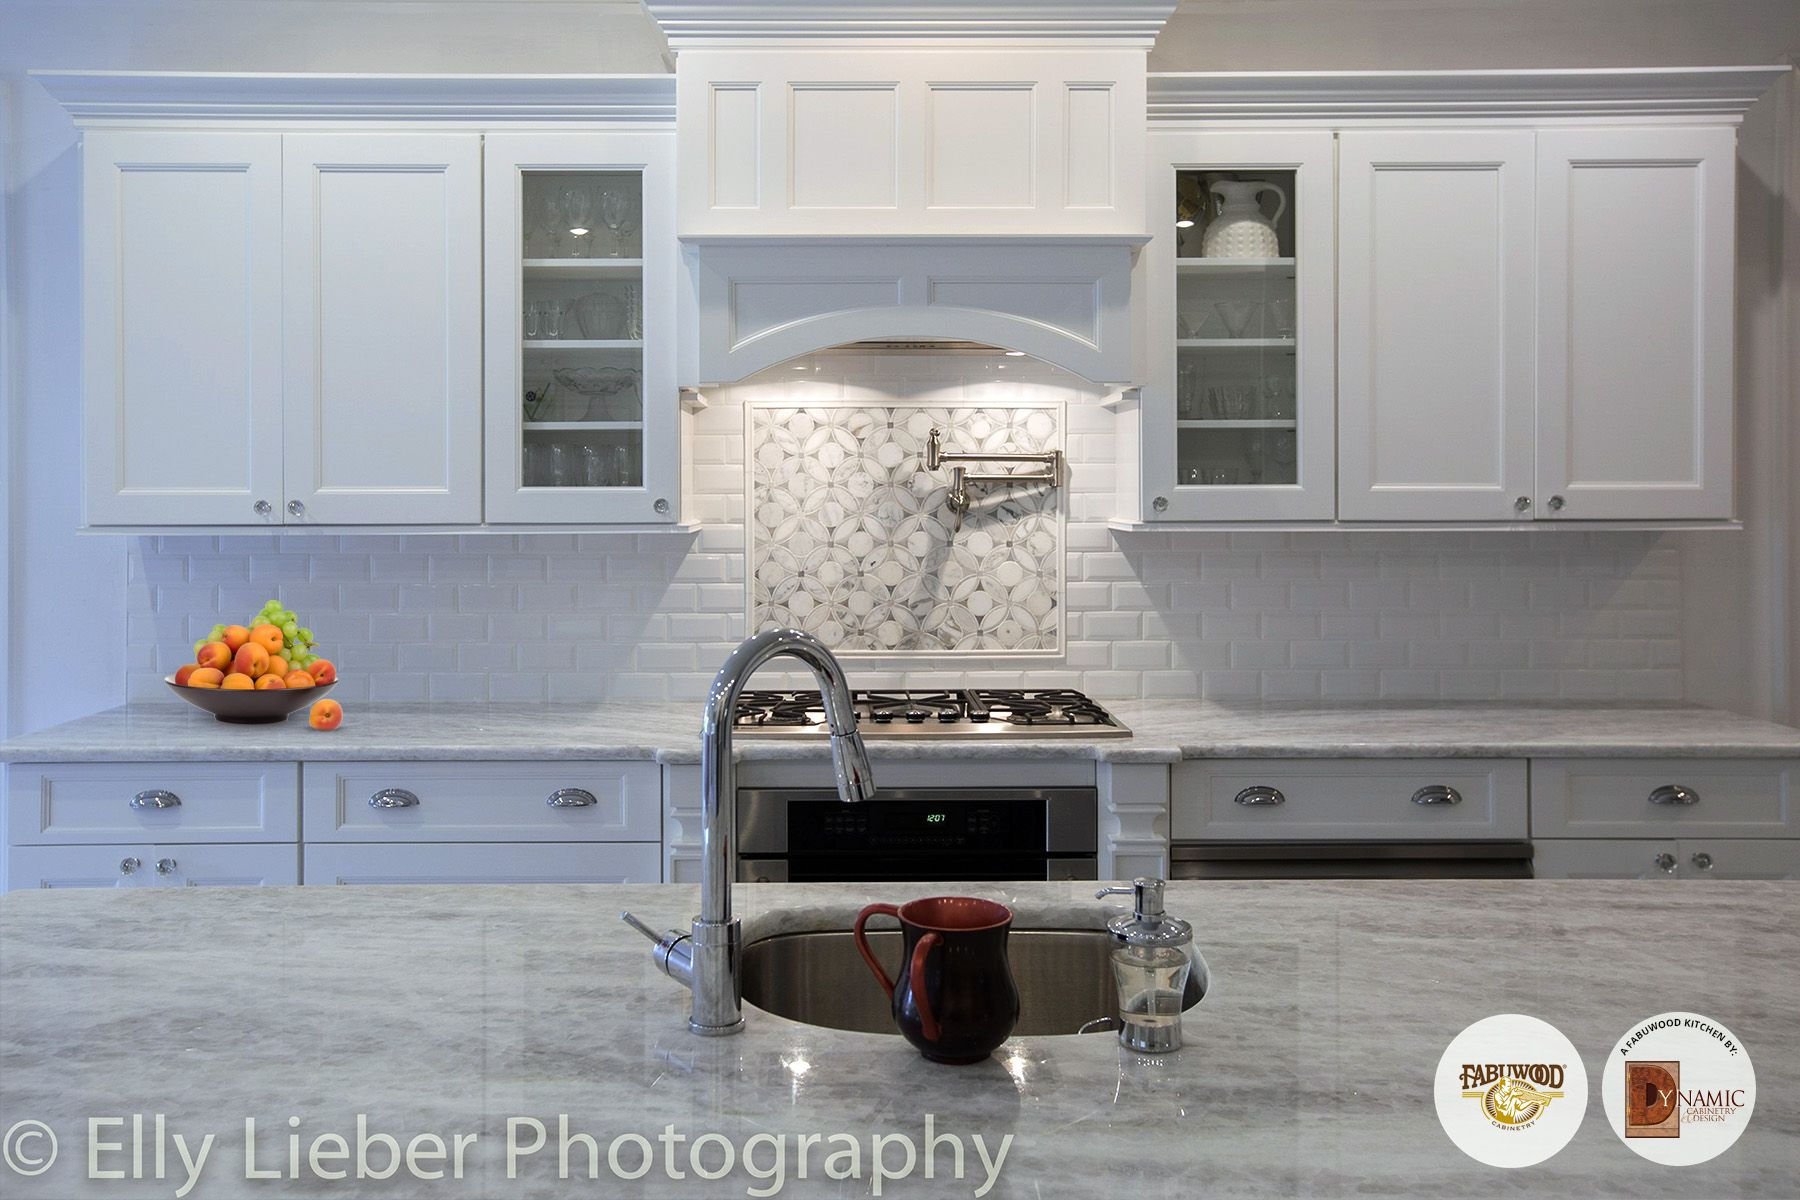 Another Stunning View Of This Nexus Frost Kitchen Built By Dynamic  Cabinetry In Cedarhurst, NY